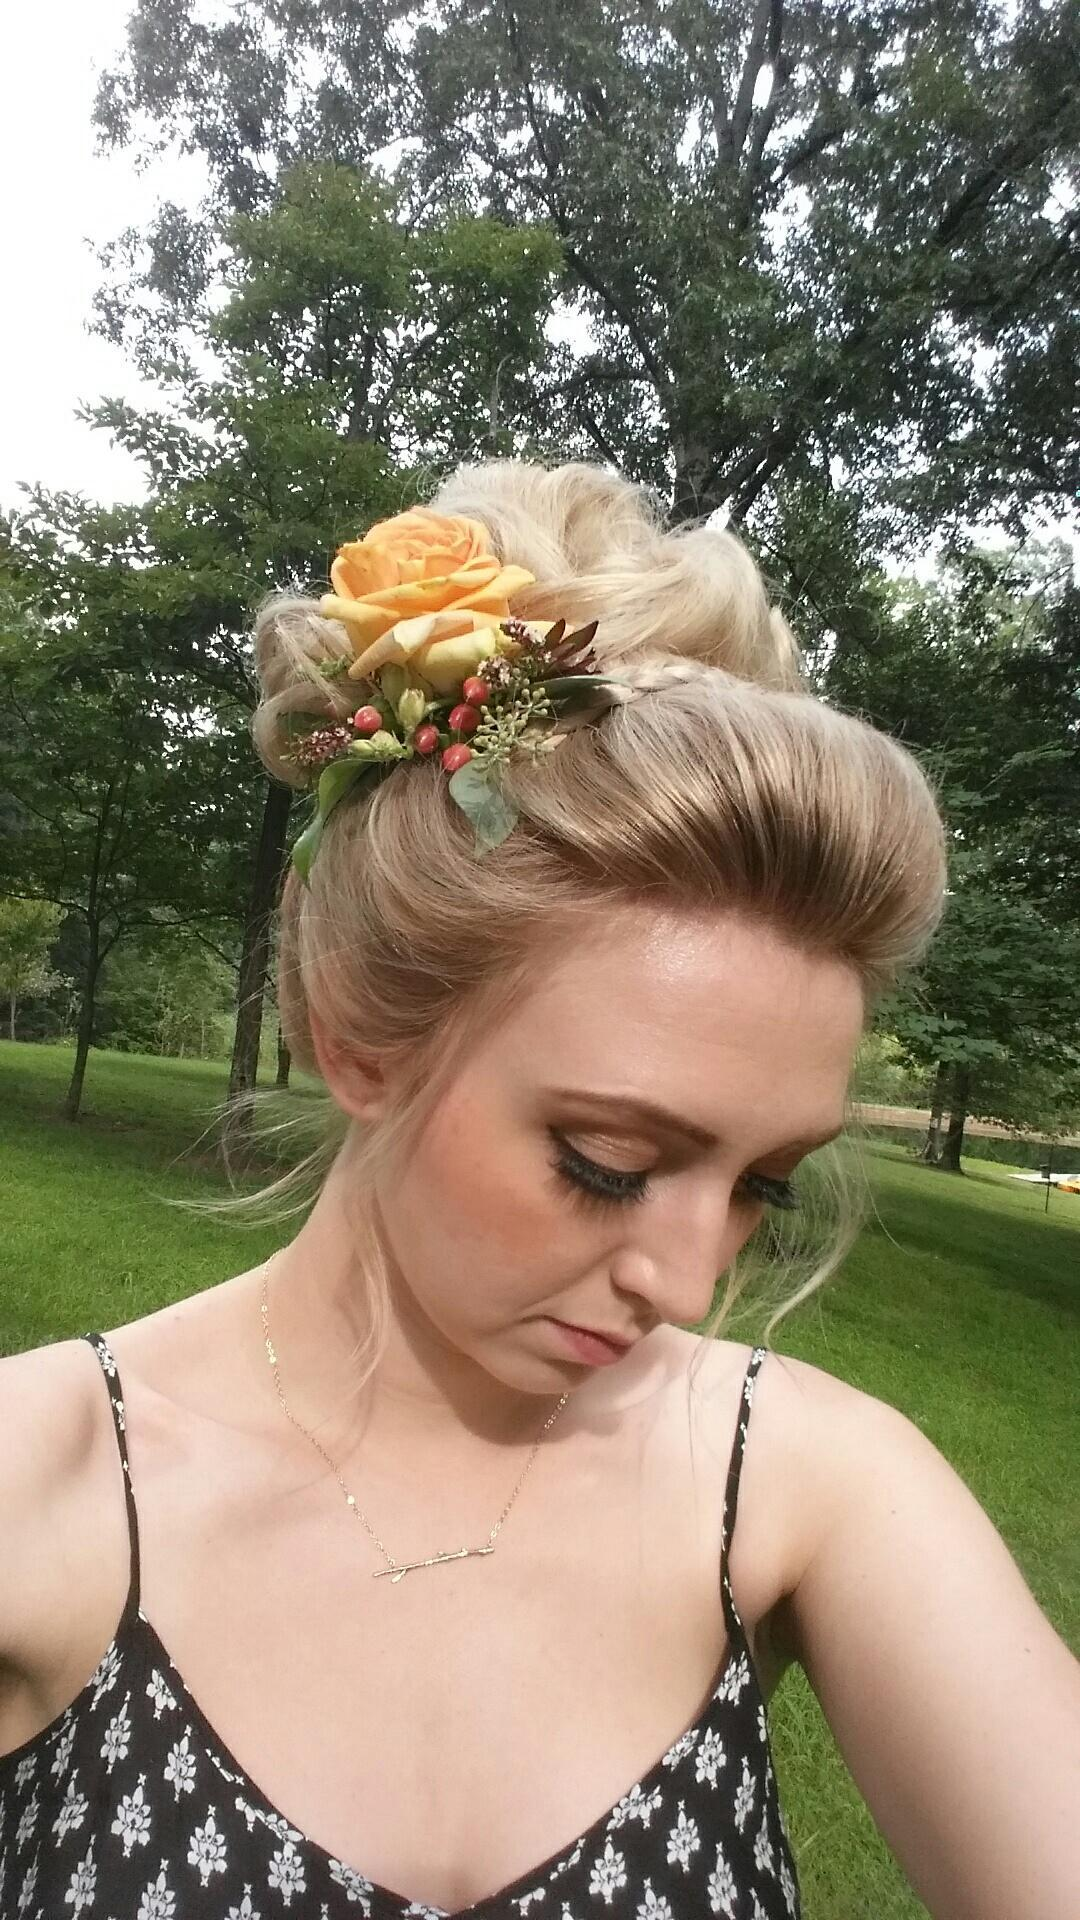 flowers_for_hair.jpg